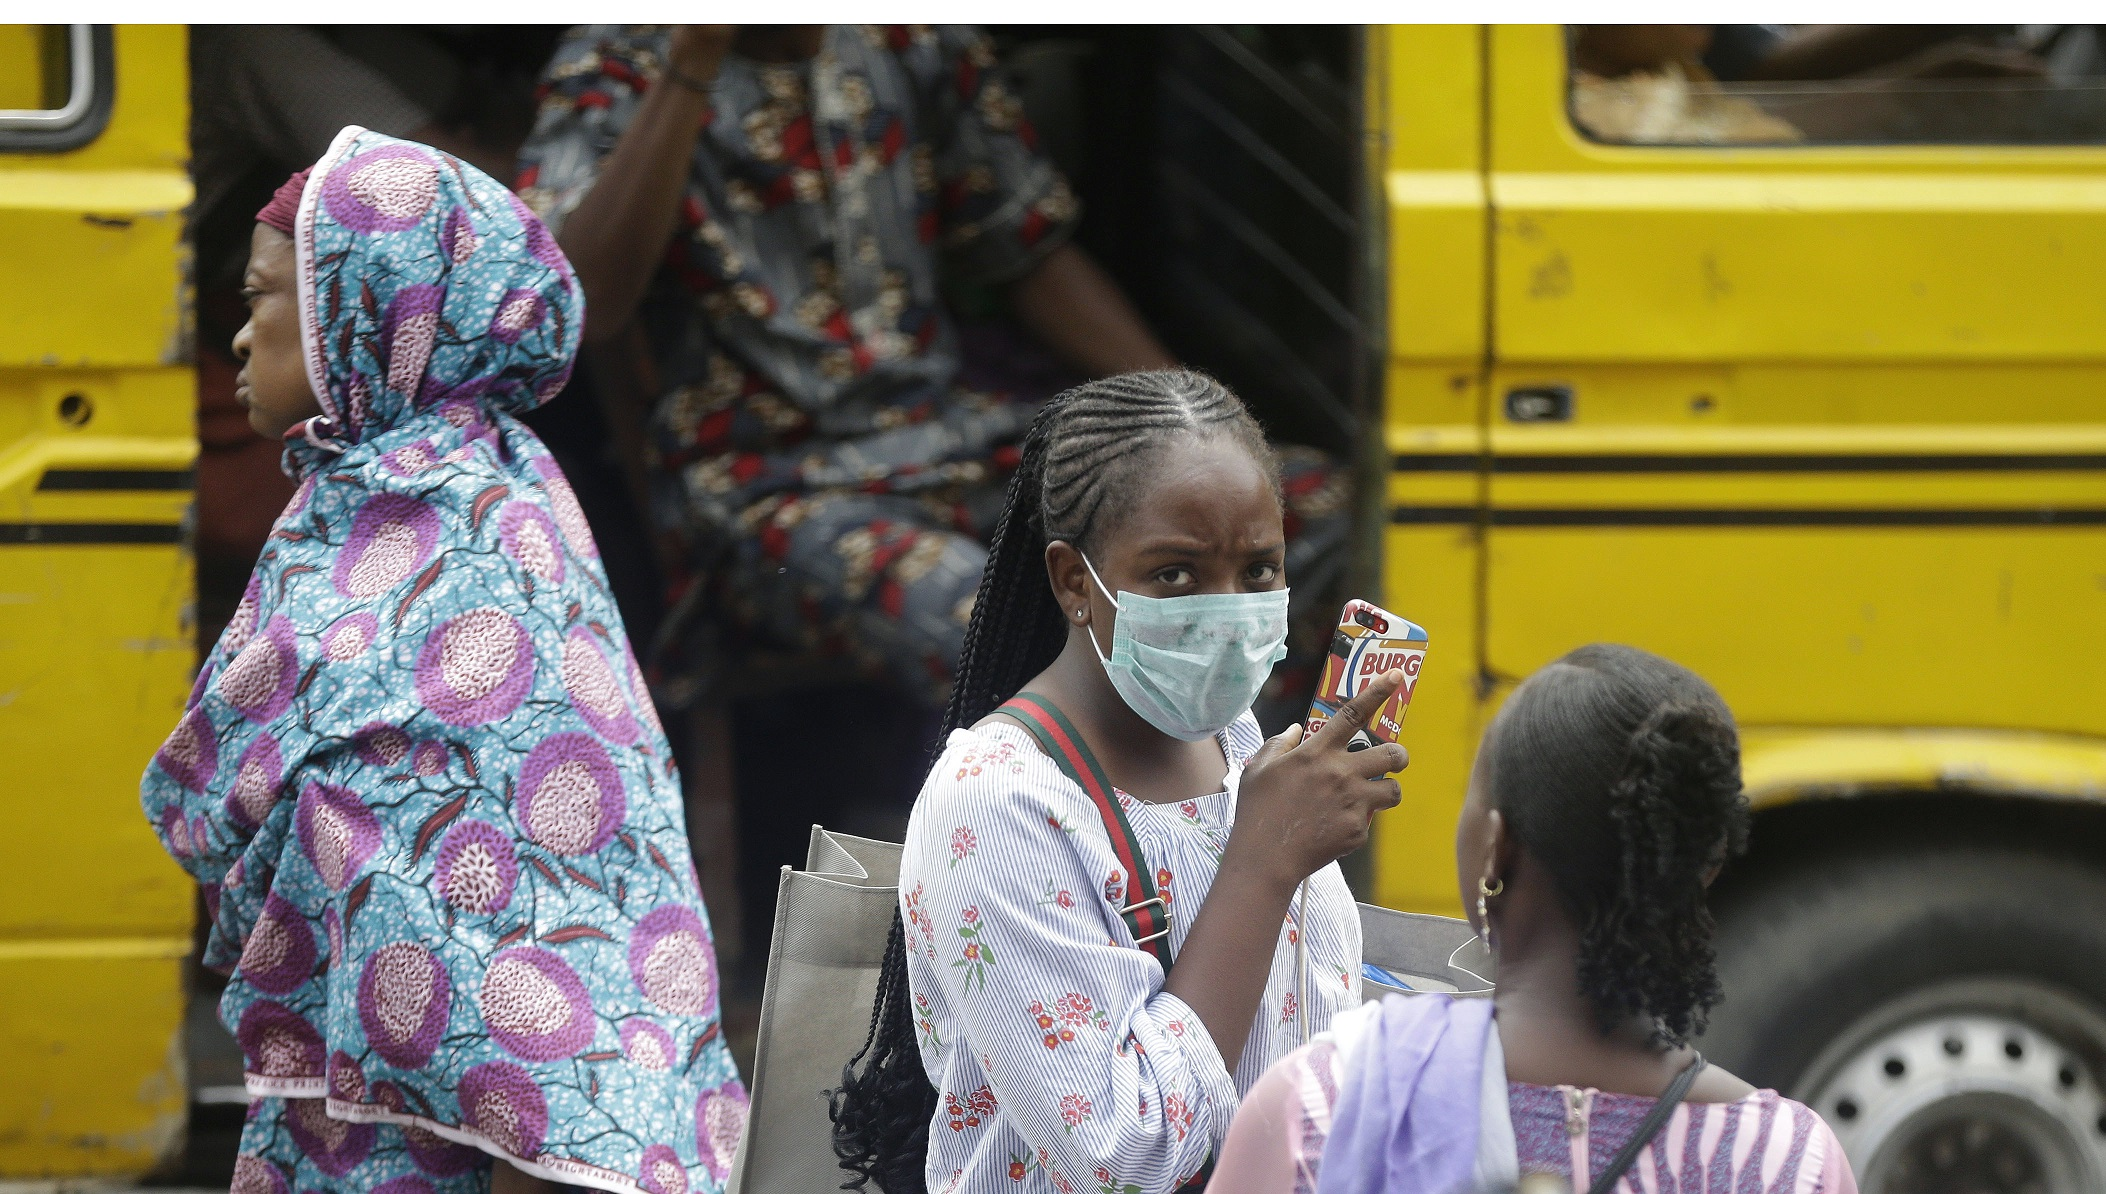 Post Isolation Tales From Lagos: The Discipline A Virus Creates